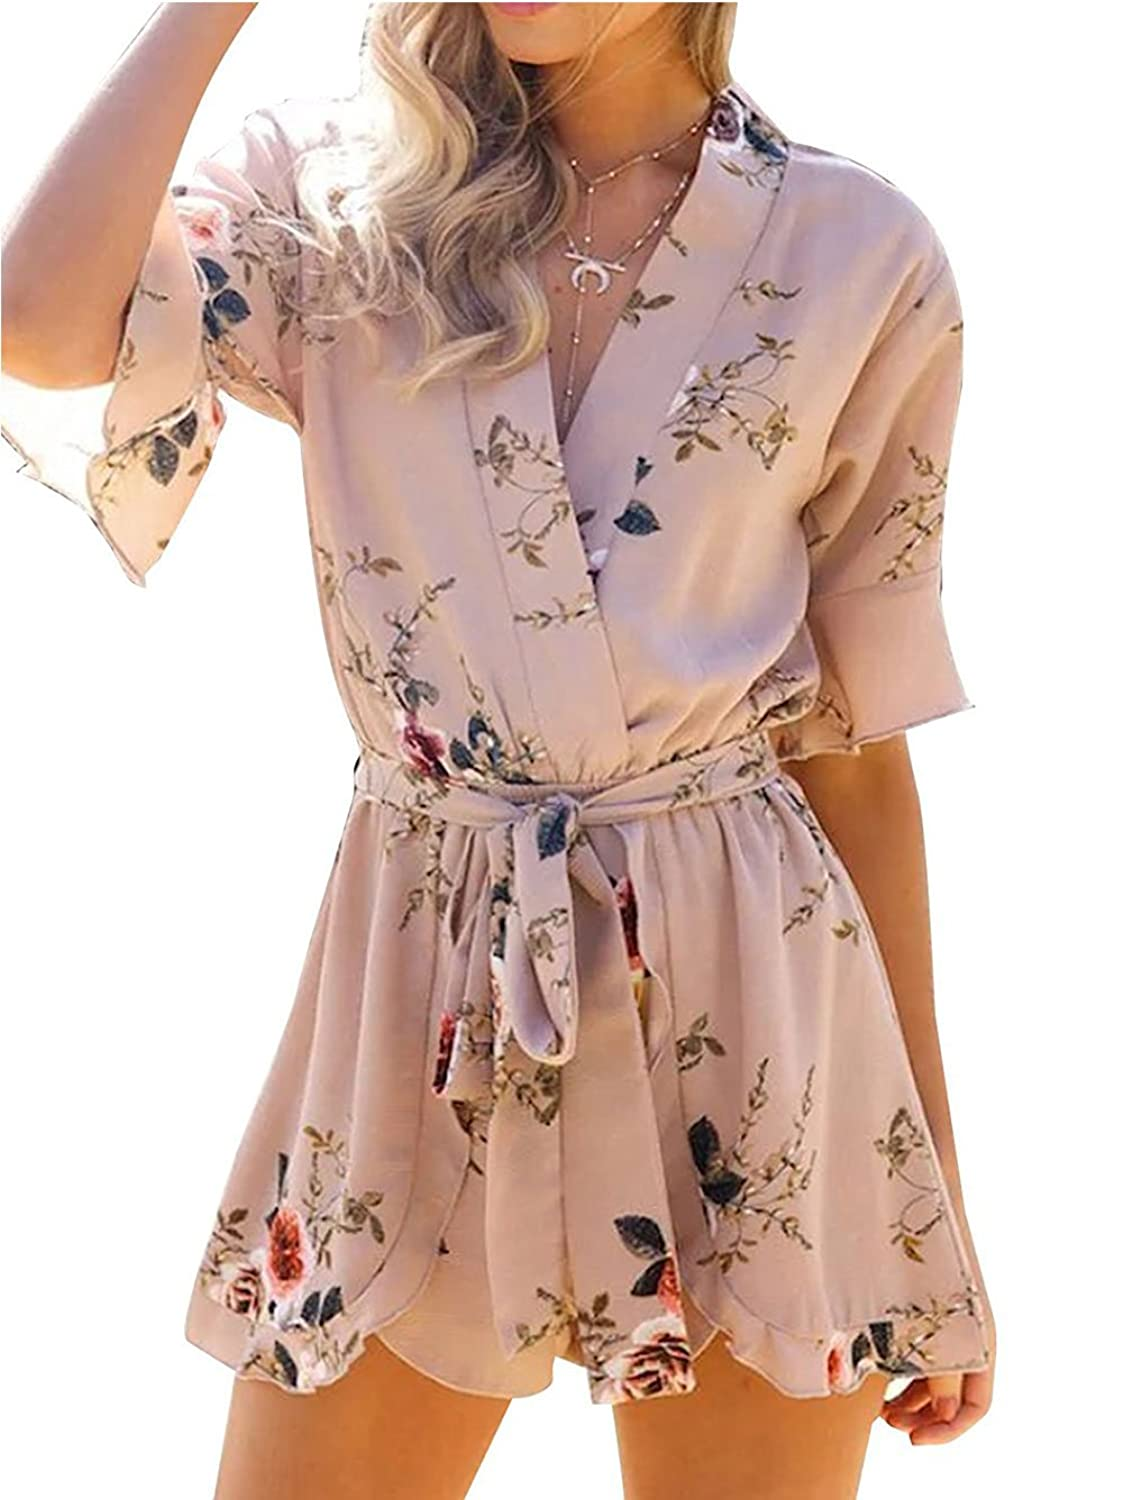 ba22a002e14 Top 10 wholesale Boho Floral Romper - Chinabrands.com